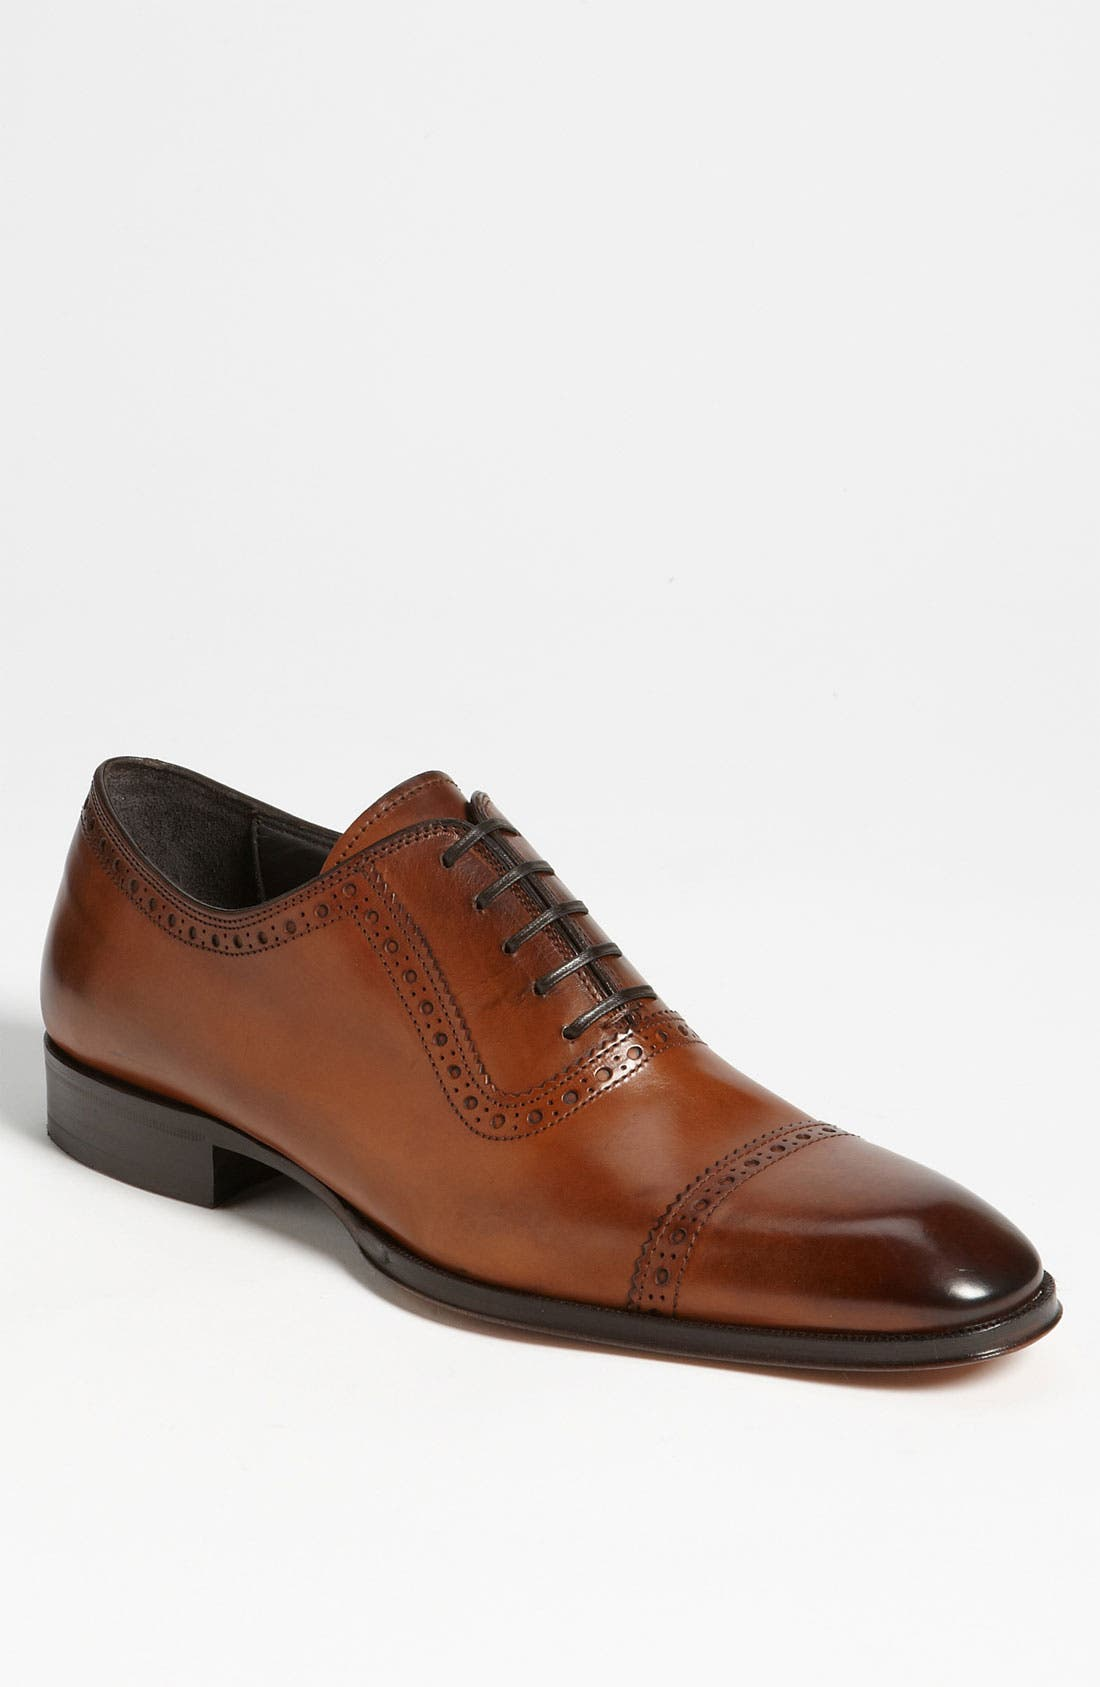 Main Image - To Boot New York 'Warwick' Cap Toe Oxford